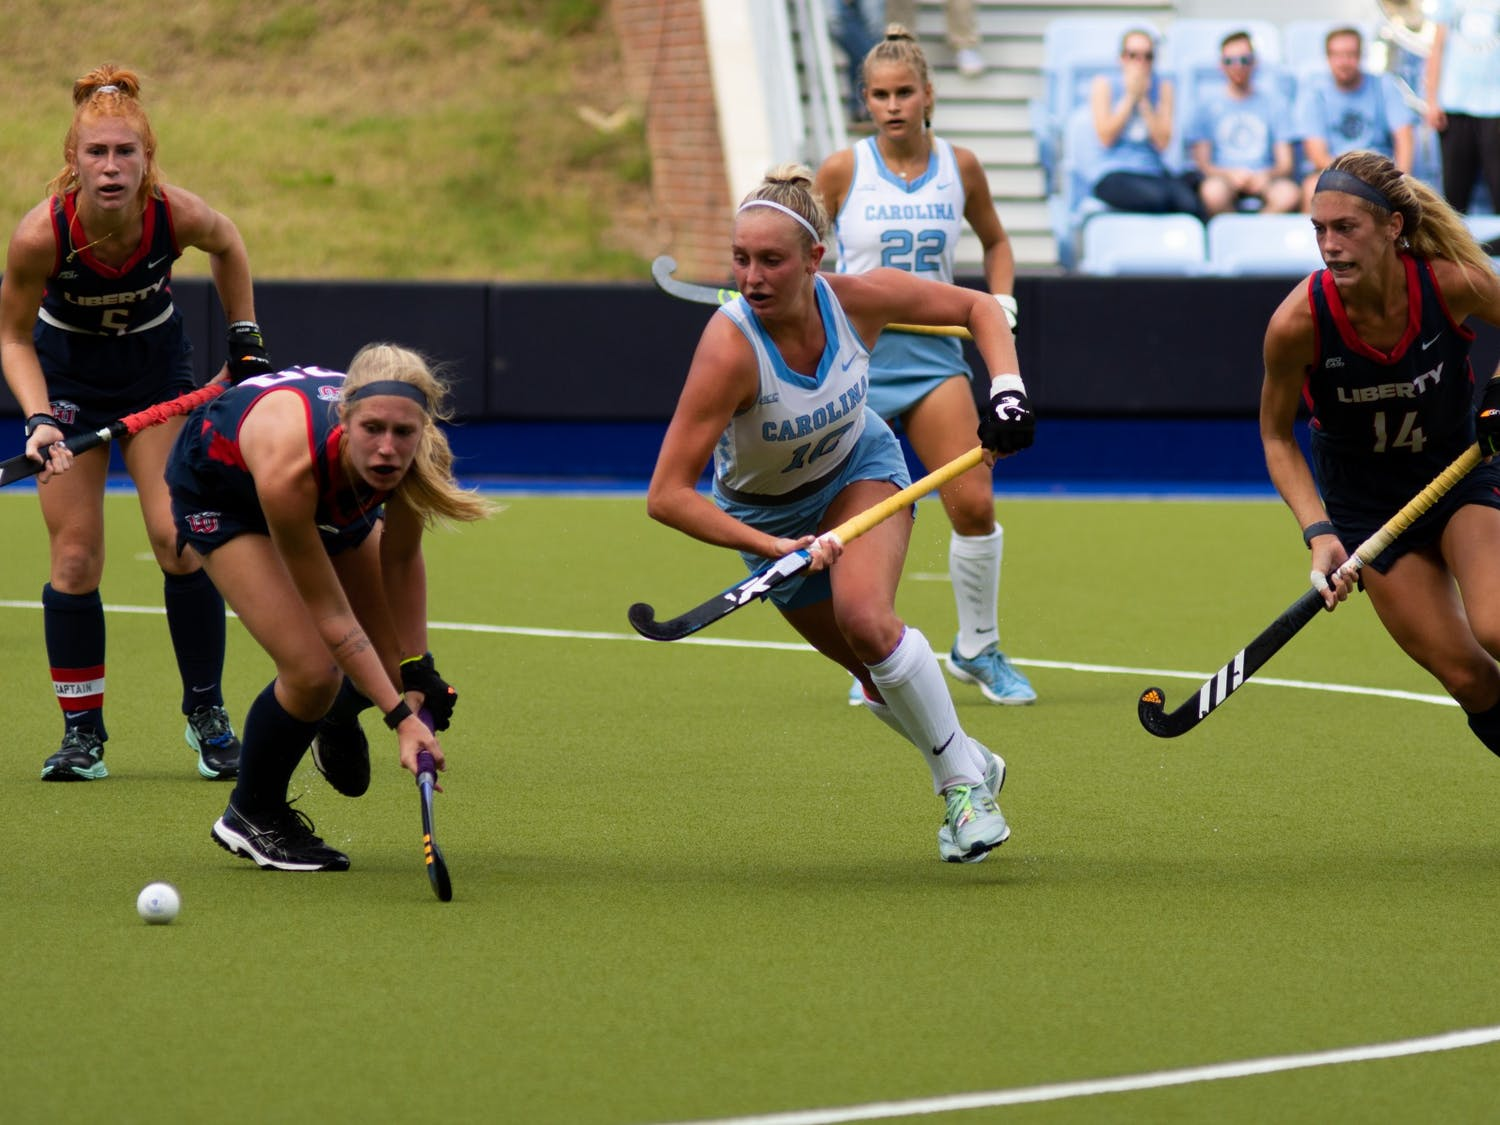 Junior midfielder Paityn Wirth (10) runs for the ball during UNC's Oct. 10 field hockey game against Liberty. The game proved to be a loss for the Tar Heels–Liberty headed home with a 4-0 win.